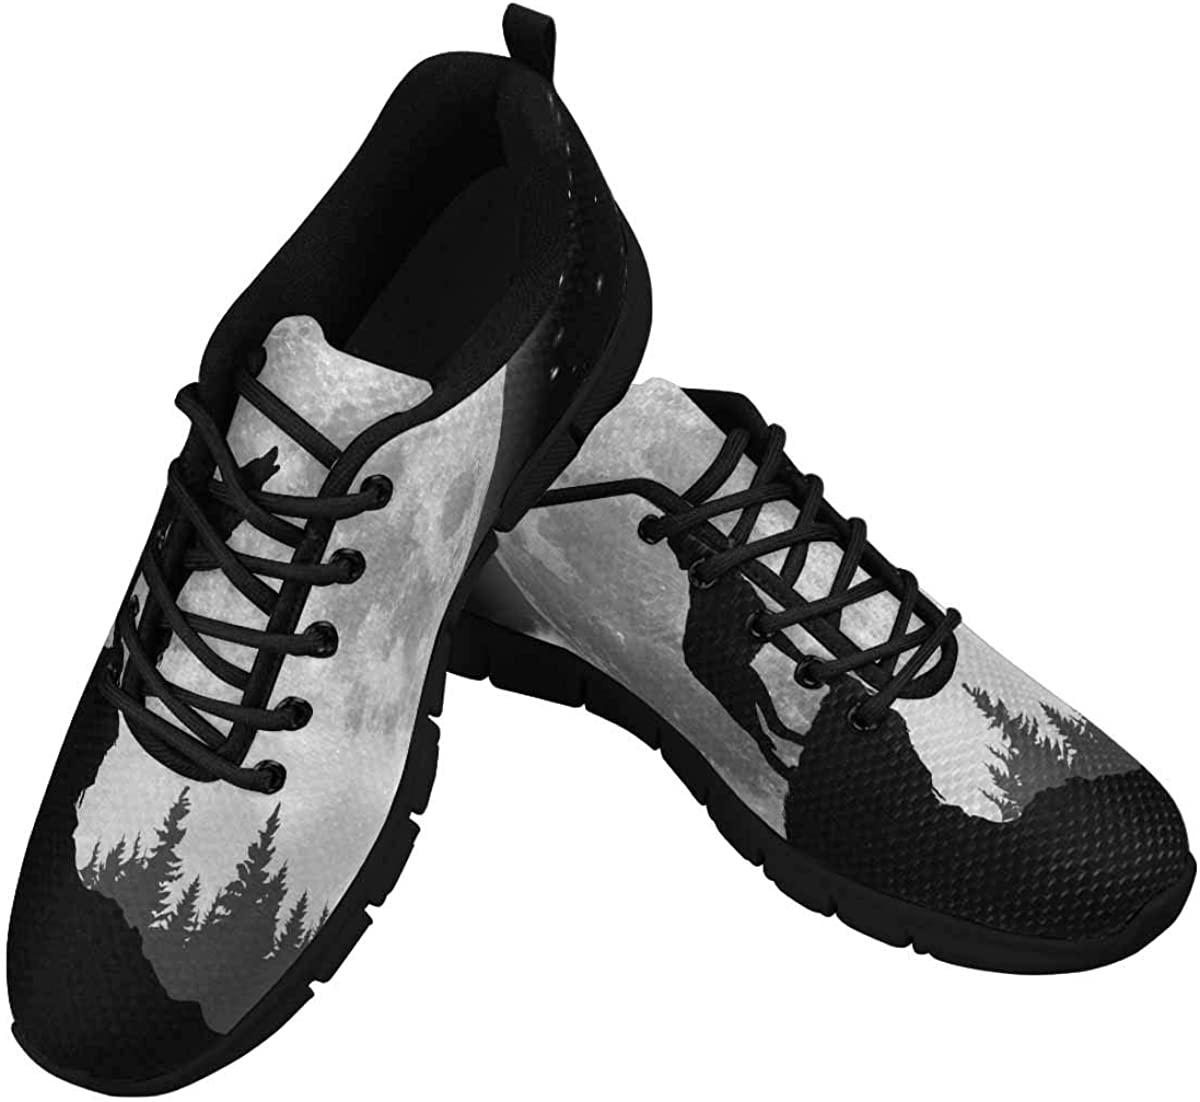 INTERESTPRINT Black and White Wolf Howling at The Moon Women's Walking Shoes Lightweight Casual Running Sneakers